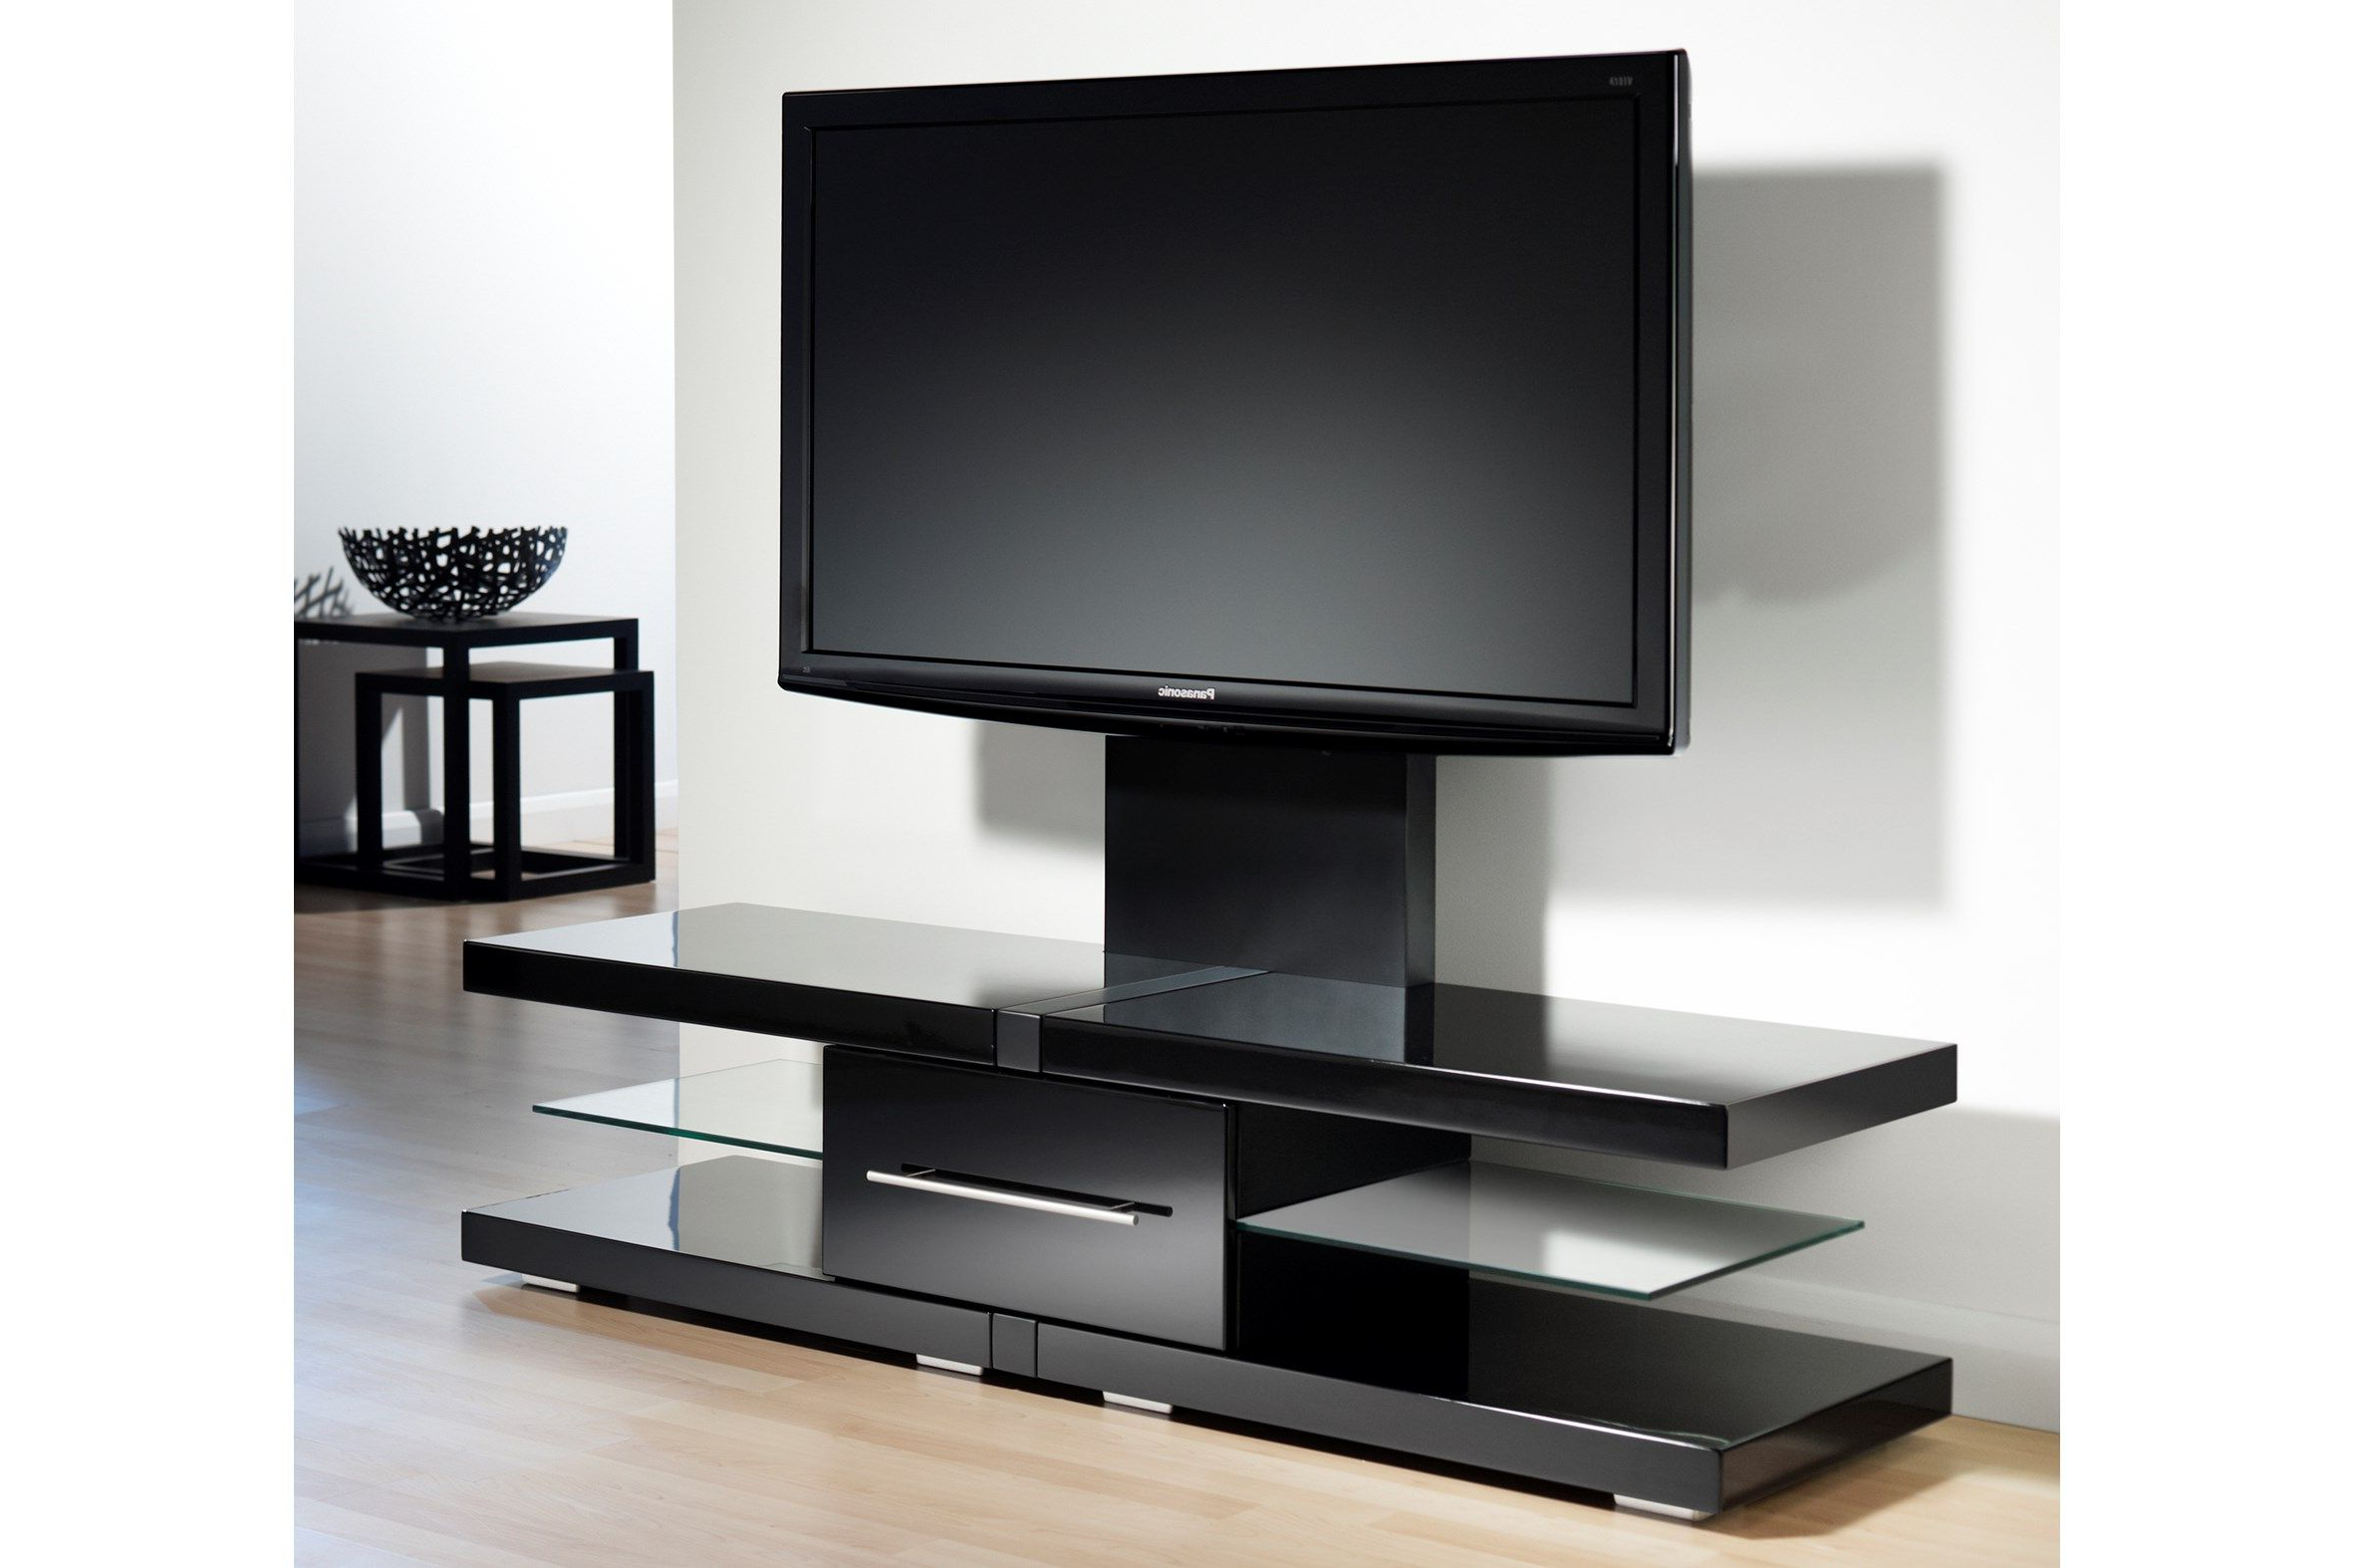 Living Room With Modern Design Tv Cabinets (View 19 of 20)